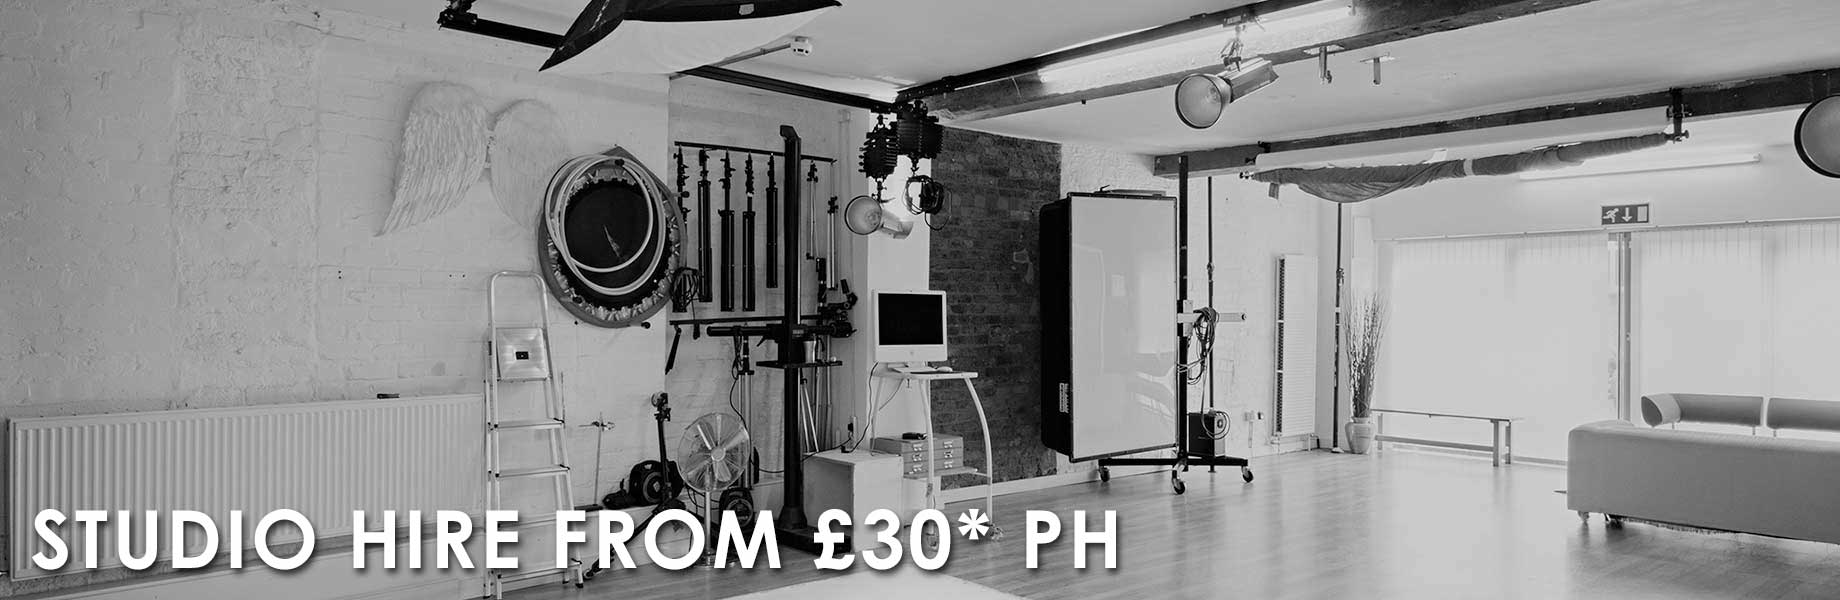 Sheffield Studio Hire from 330 per hour